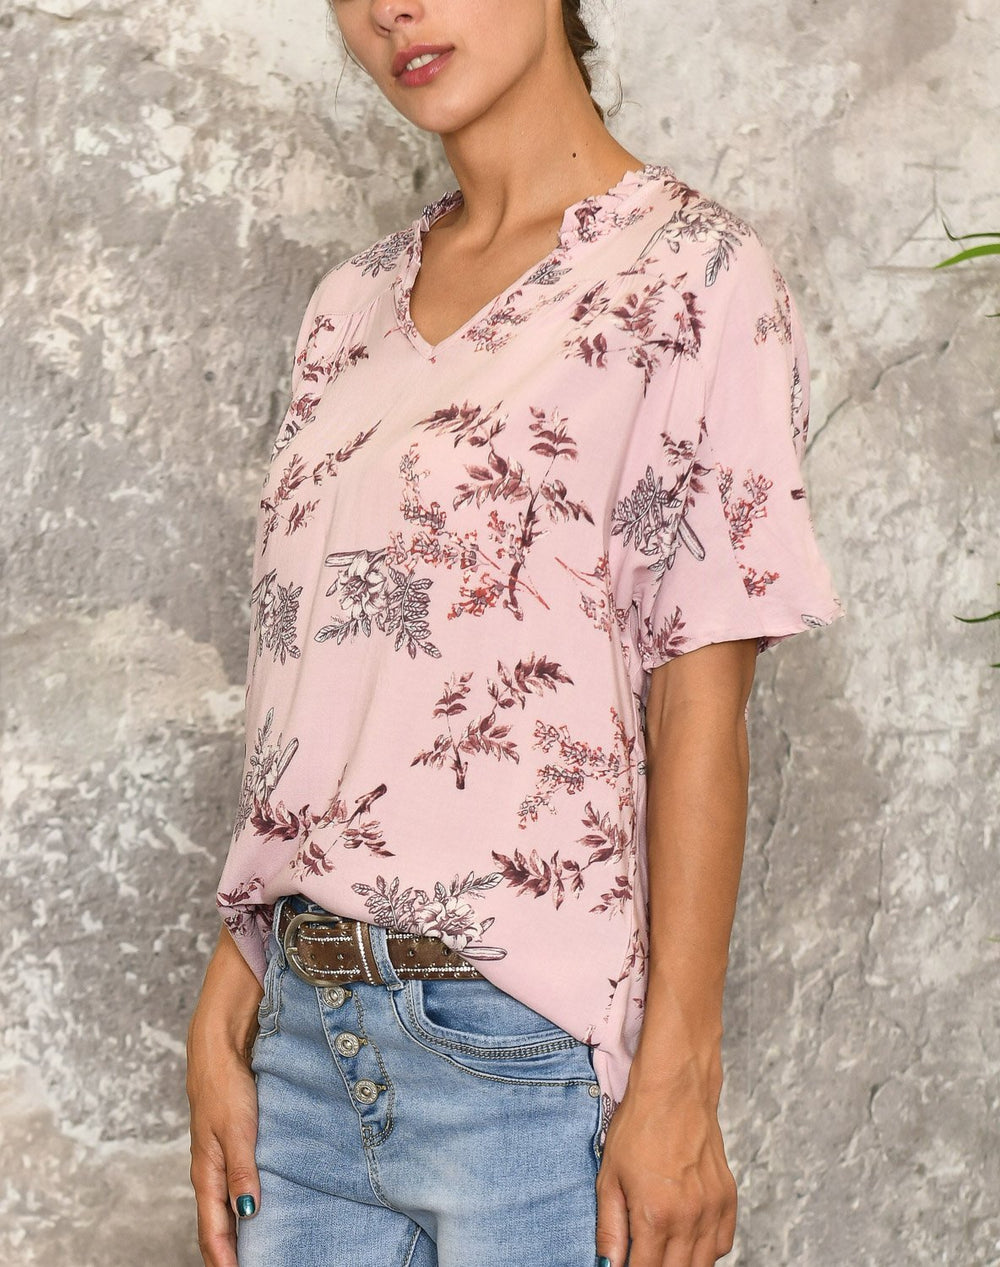 Prepair Cherry bluse rosa - Online-Mode